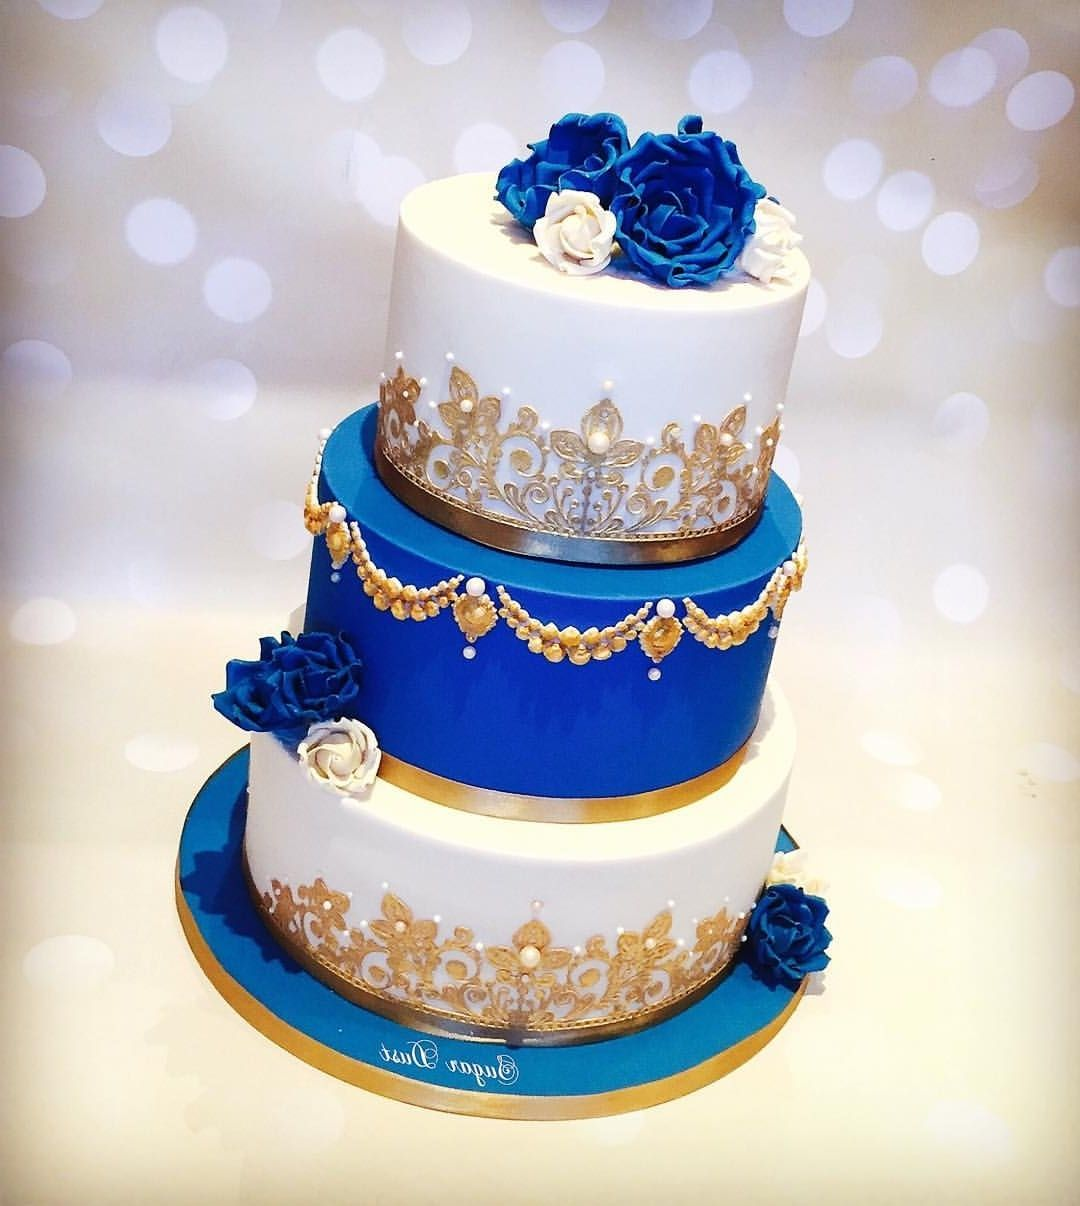 Wedding Cakes Royal Blue And Gold Wedding Cakes Blue Royal Blue Wedding Cakes Gold Wedding Cake